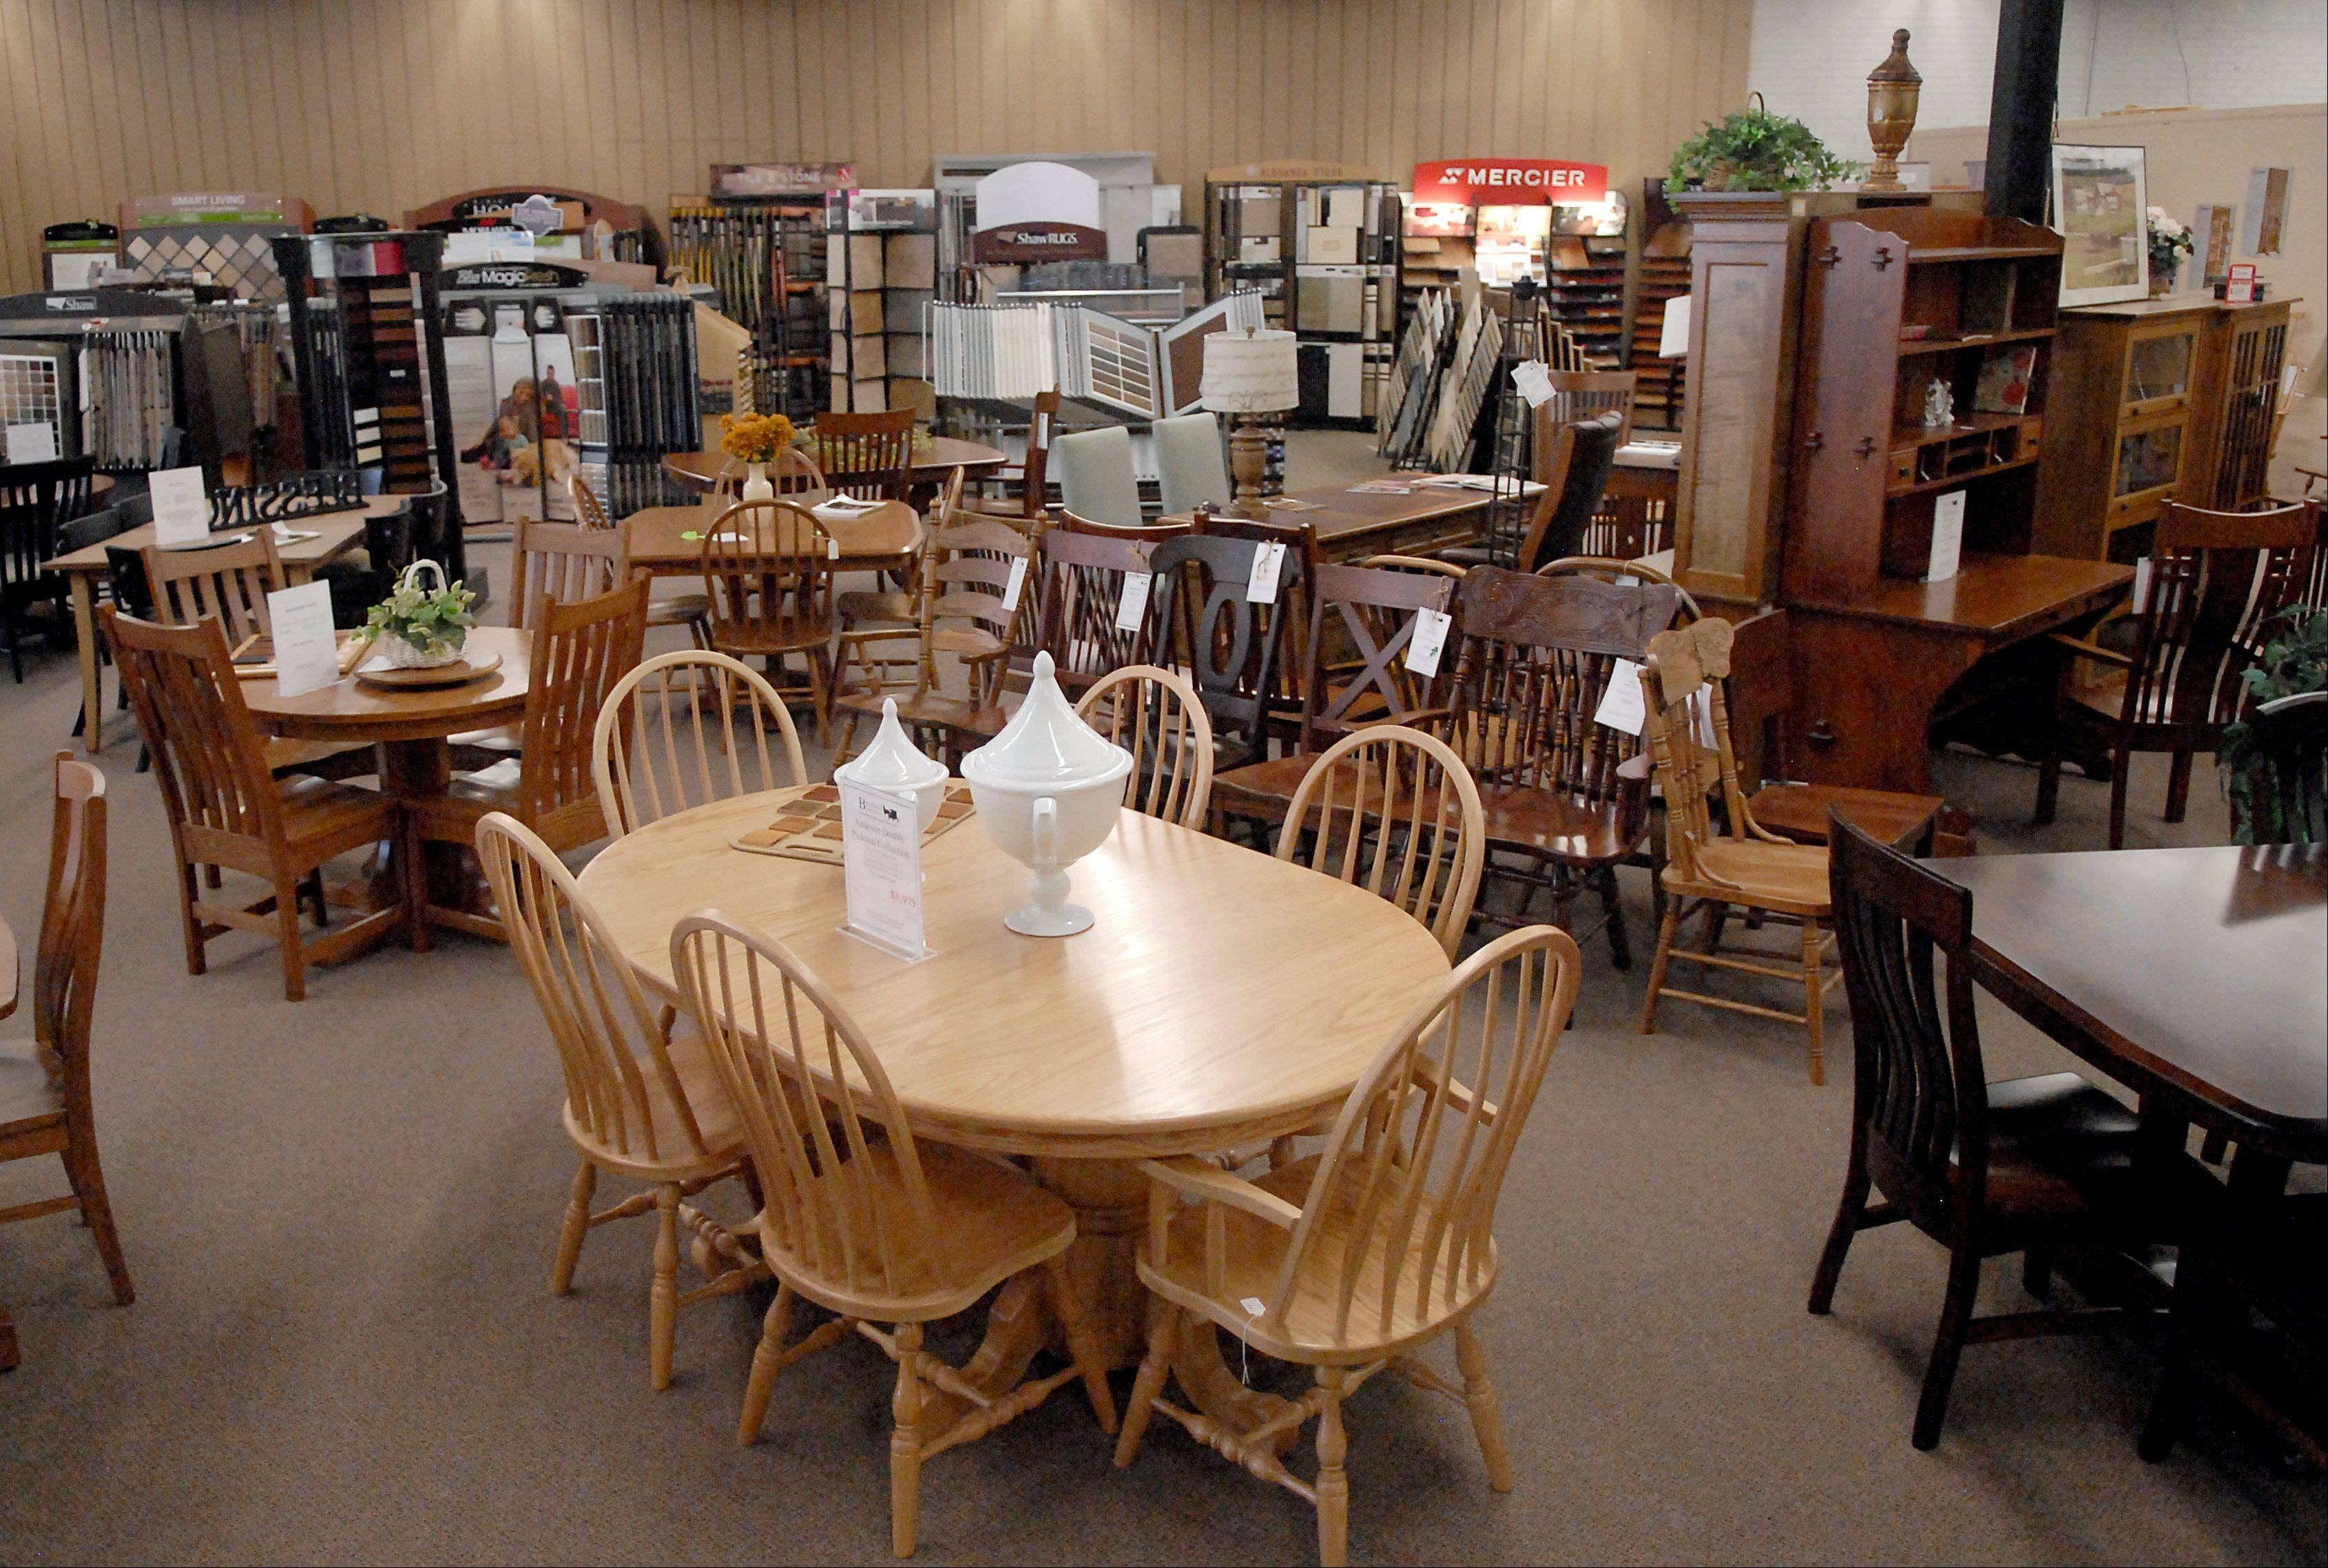 Burress Amish Furniture at 663 Villa St. in Elgin has been in business since 1983.